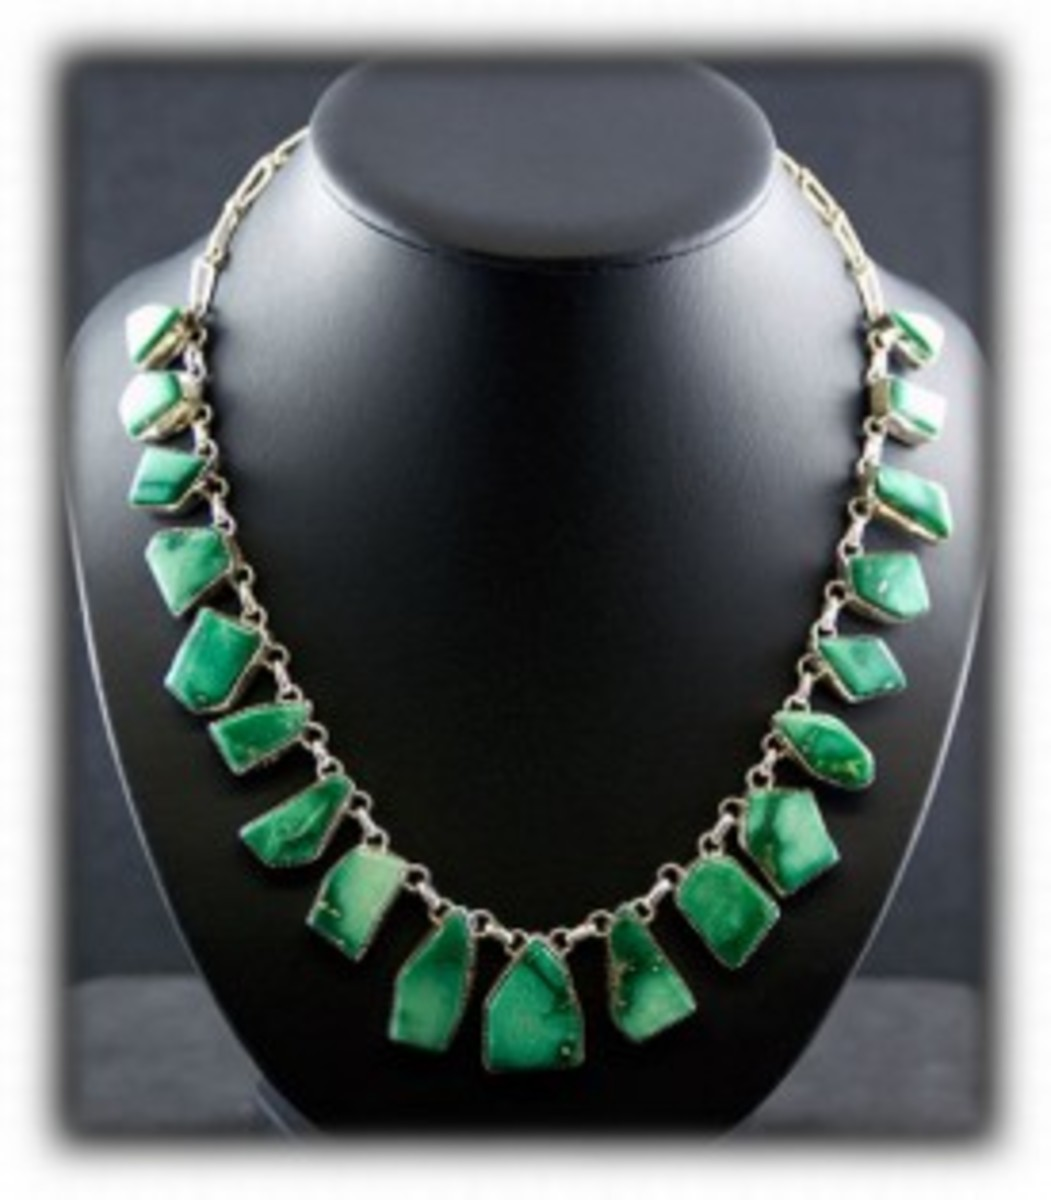 Navajo Tab Necklace made with green Nevada turquoise from the Broken Arrow Mine.